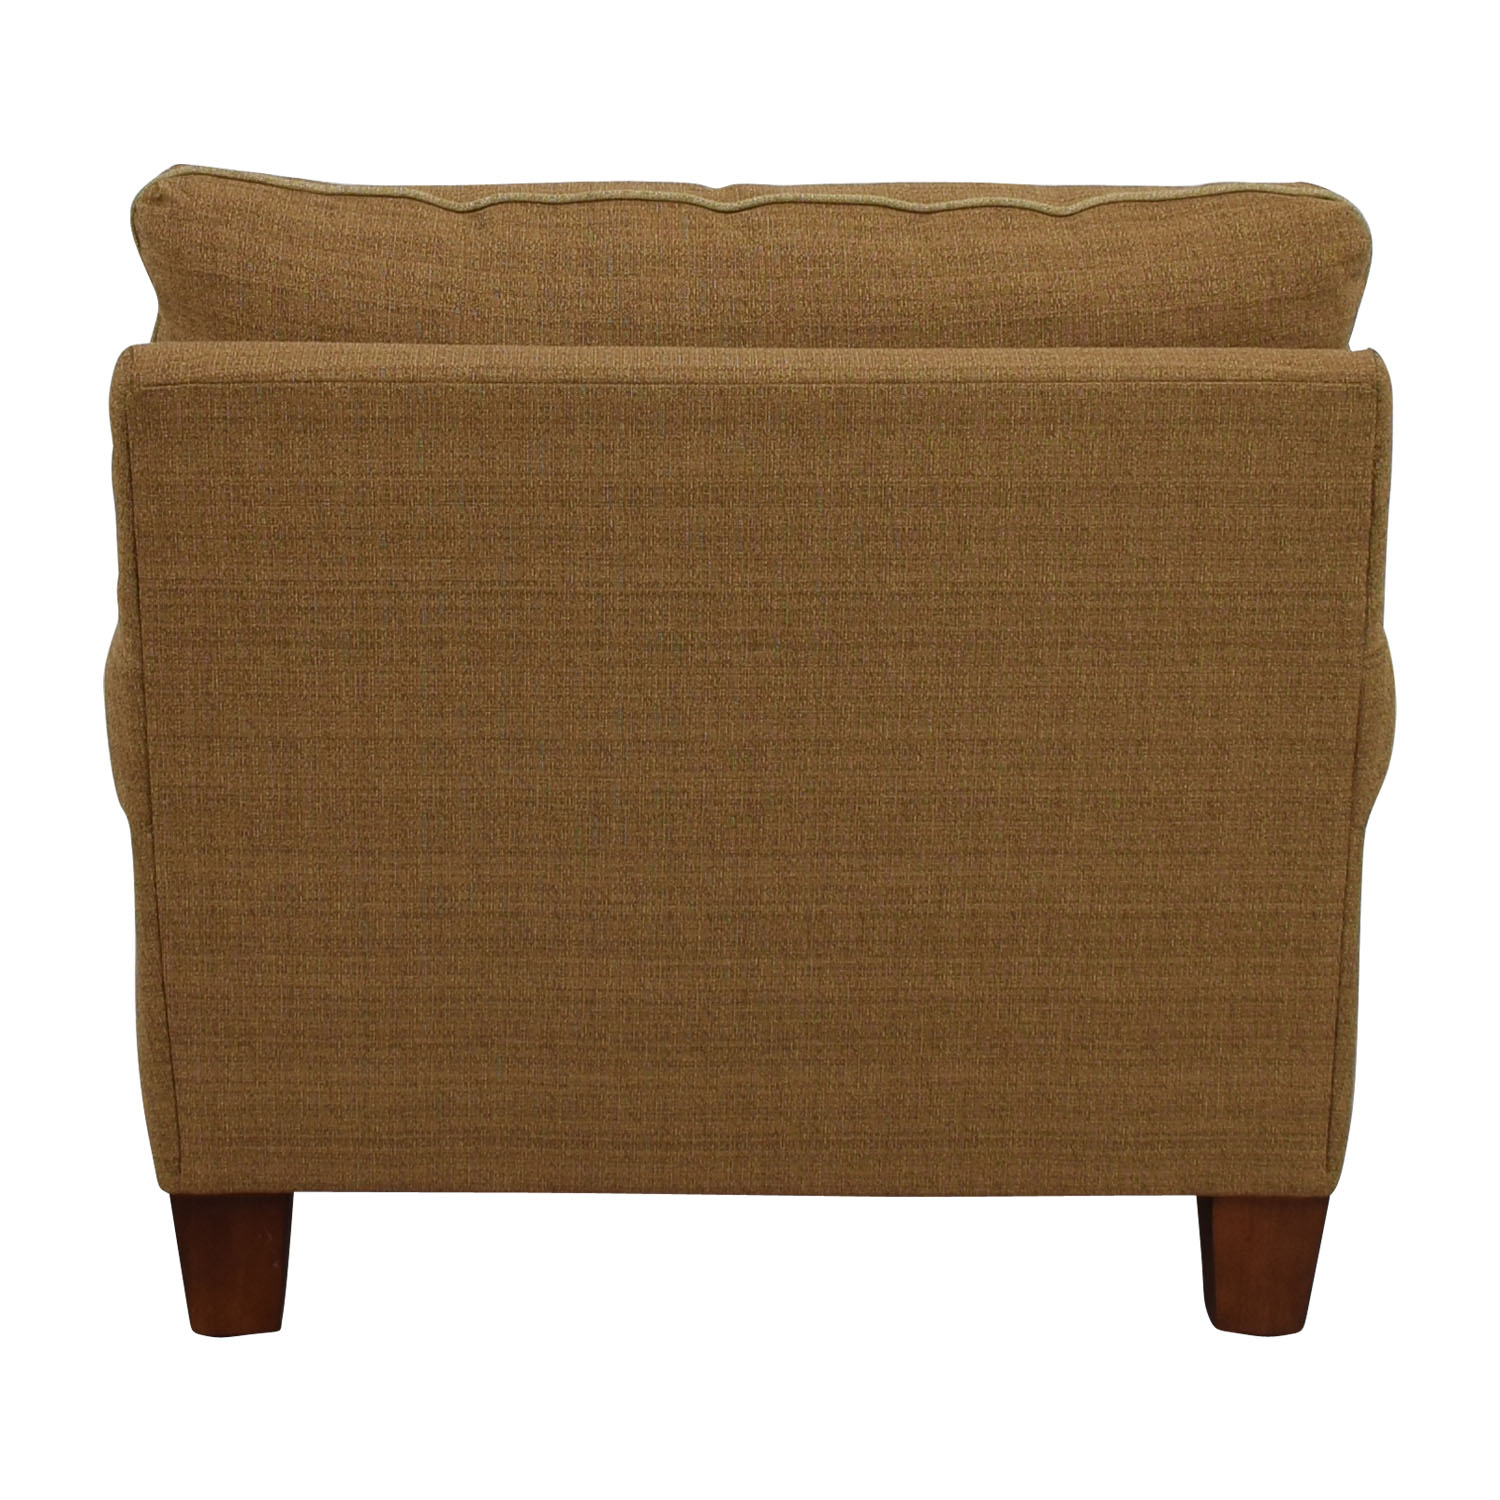 Braxton Culler Braxton Culler Brown Upholstered Chair price